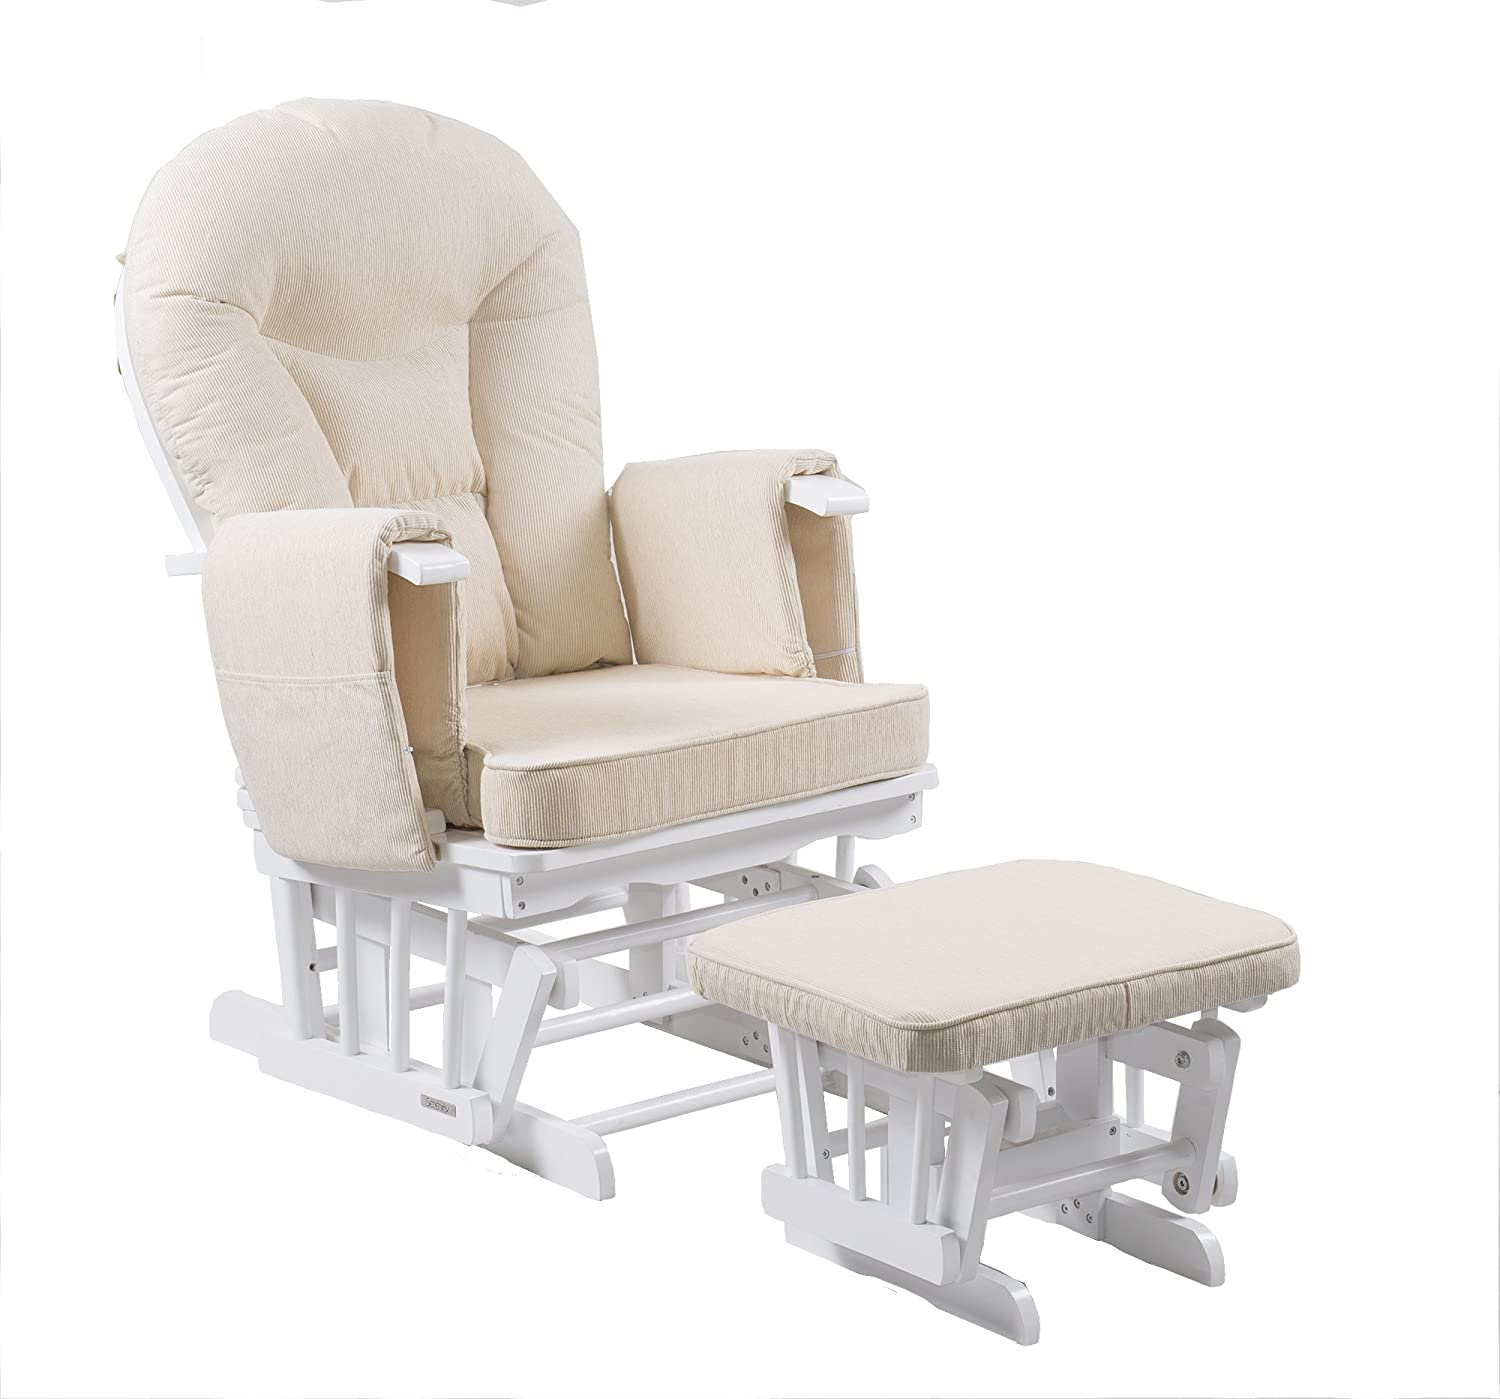 Serenity Nursing Glider maternity chair with footstool